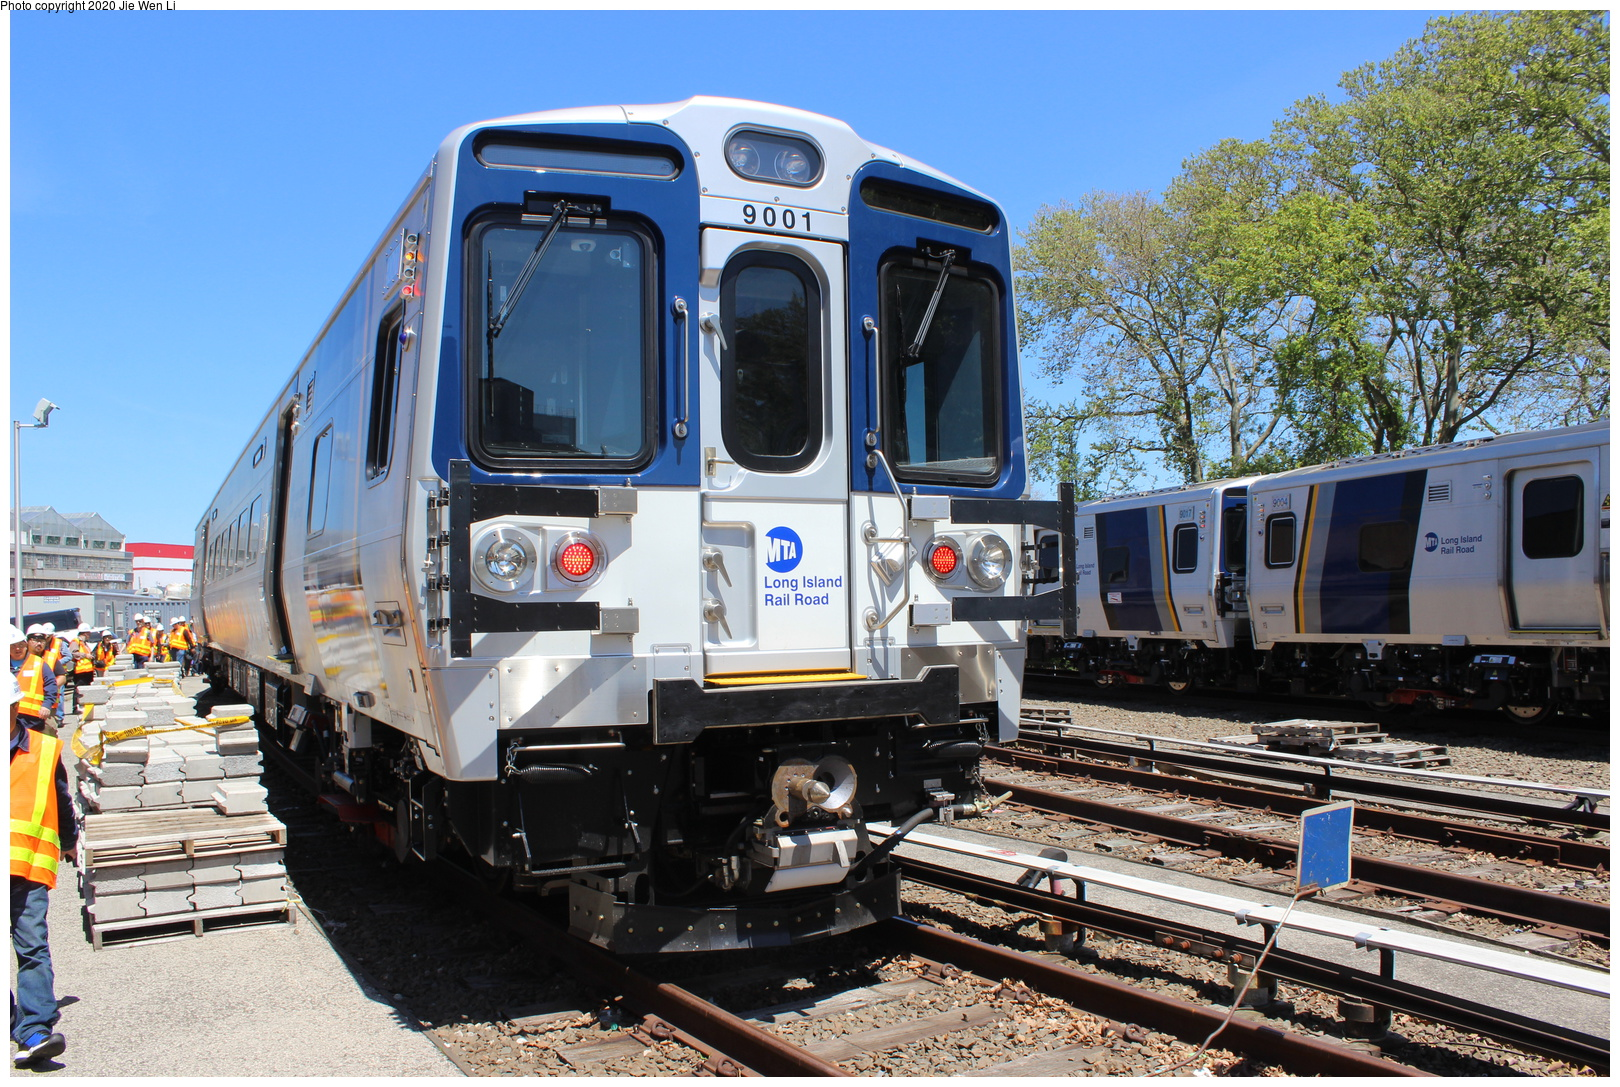 (267k, 1044x988)<br><b>Country:</b> United States<br><b>City:</b> New York<br><b>System:</b> New York City Transit<br><b>Line:</b> 9th Avenue El<br><b>Location:</b> 155th Street <br><b>Car:</b> Low-V 4215 <br><b>Photo by:</b> Joel Shanus<br><b>Viewed (this week/total):</b> 1 / 1866